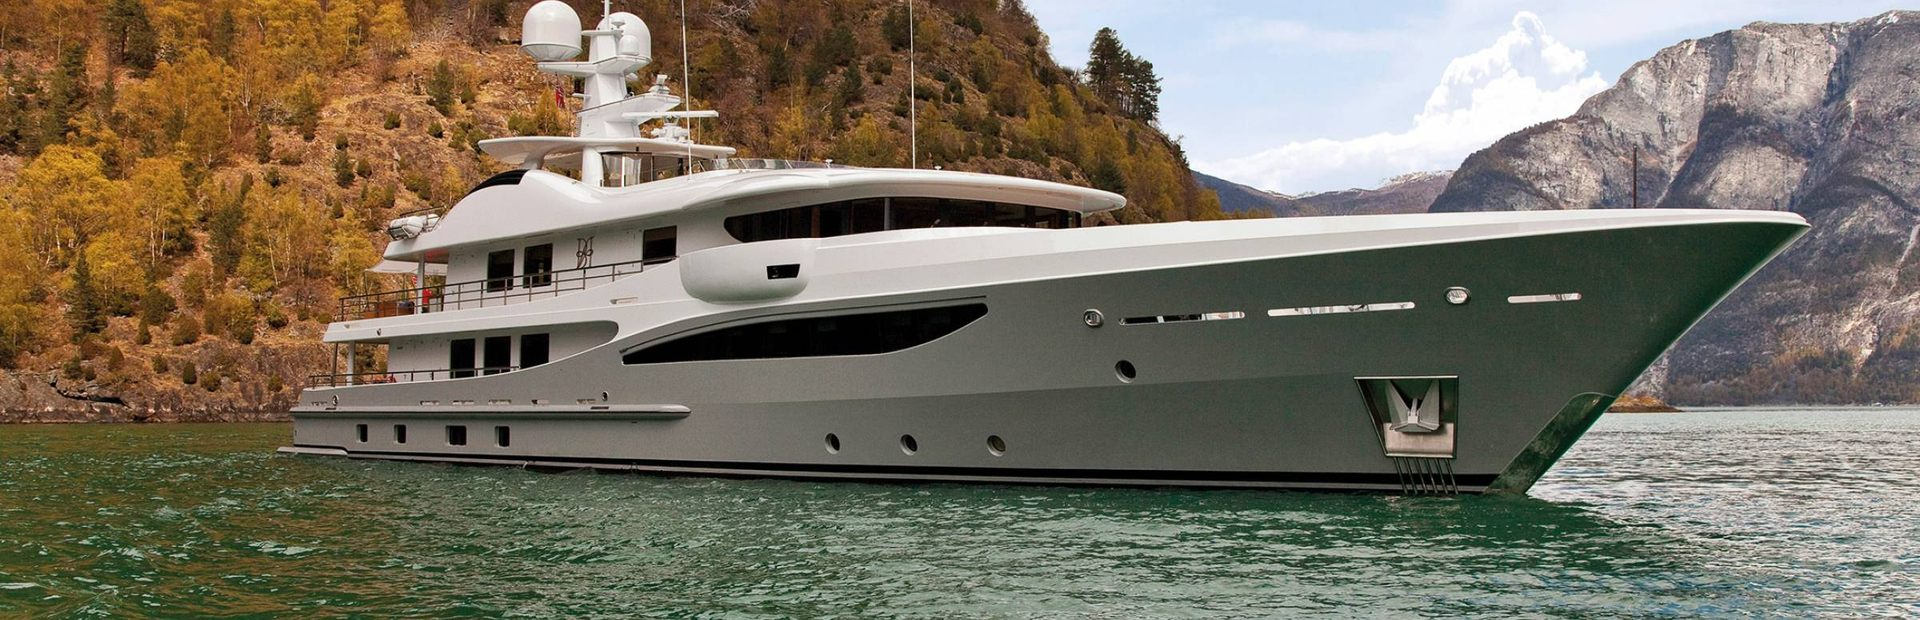 Amels 171 Yacht Charter